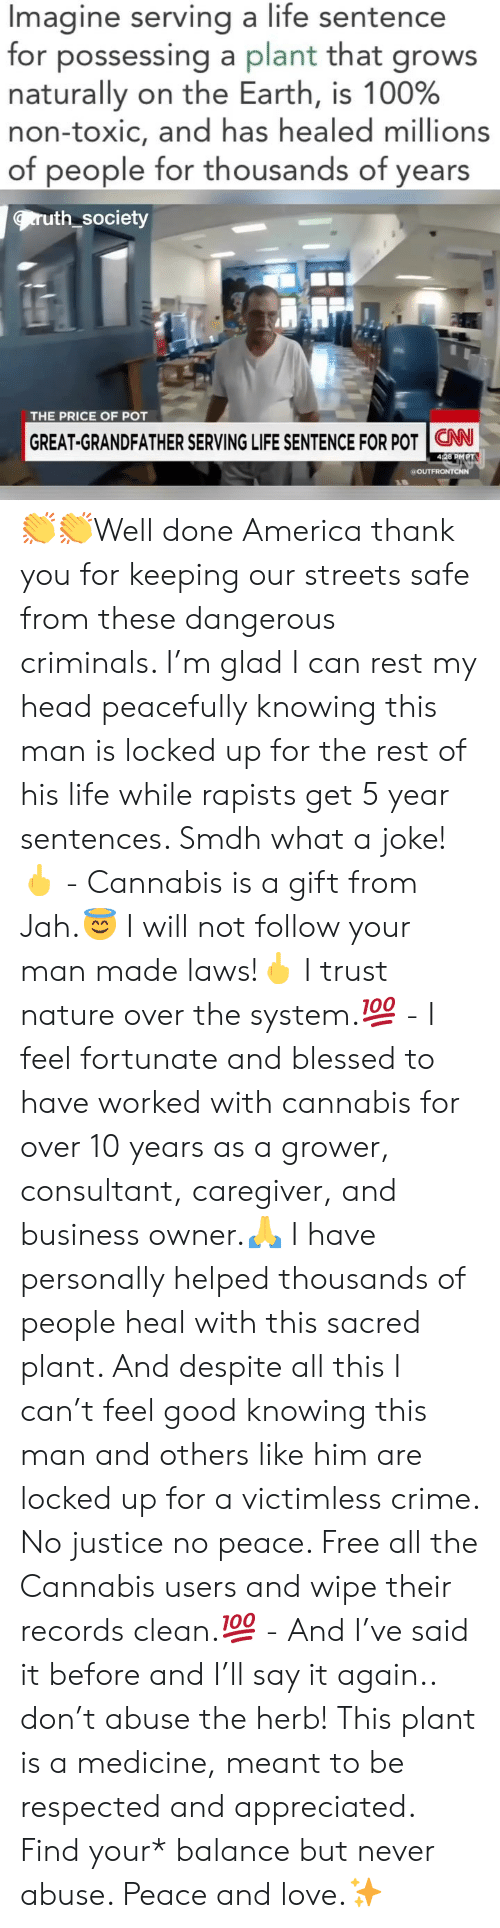 Caregiver: Imagine serving a life sentence  for possessing a plant that grows  naturally on the Earth, is 100%  non-toxic, and has healed millions  of people for thousands of years  ruth society  THE PRICE OF POT  GREAT-GRANDFATHER SERVING LIFE SENTENCE FOR POT | CNN-  428 PMPT  a OUT 👏👏Well done America thank you for keeping our streets safe from these dangerous criminals. I'm glad I can rest my head peacefully knowing this man is locked up for the rest of his life while rapists get 5 year sentences. Smdh what a joke!🖕 - Cannabis is a gift from Jah.😇 I will not follow your man made laws!🖕 I trust nature over the system.💯 - I feel fortunate and blessed to have worked with cannabis for over 10 years as a grower, consultant, caregiver, and business owner.🙏 I have personally helped thousands of people heal with this sacred plant. And despite all this I can't feel good knowing this man and others like him are locked up for a victimless crime. No justice no peace. Free all the Cannabis users and wipe their records clean.💯 - And I've said it before and I'll say it again.. don't abuse the herb! This plant is a medicine, meant to be respected and appreciated. Find your* balance but never abuse. Peace and love.✨